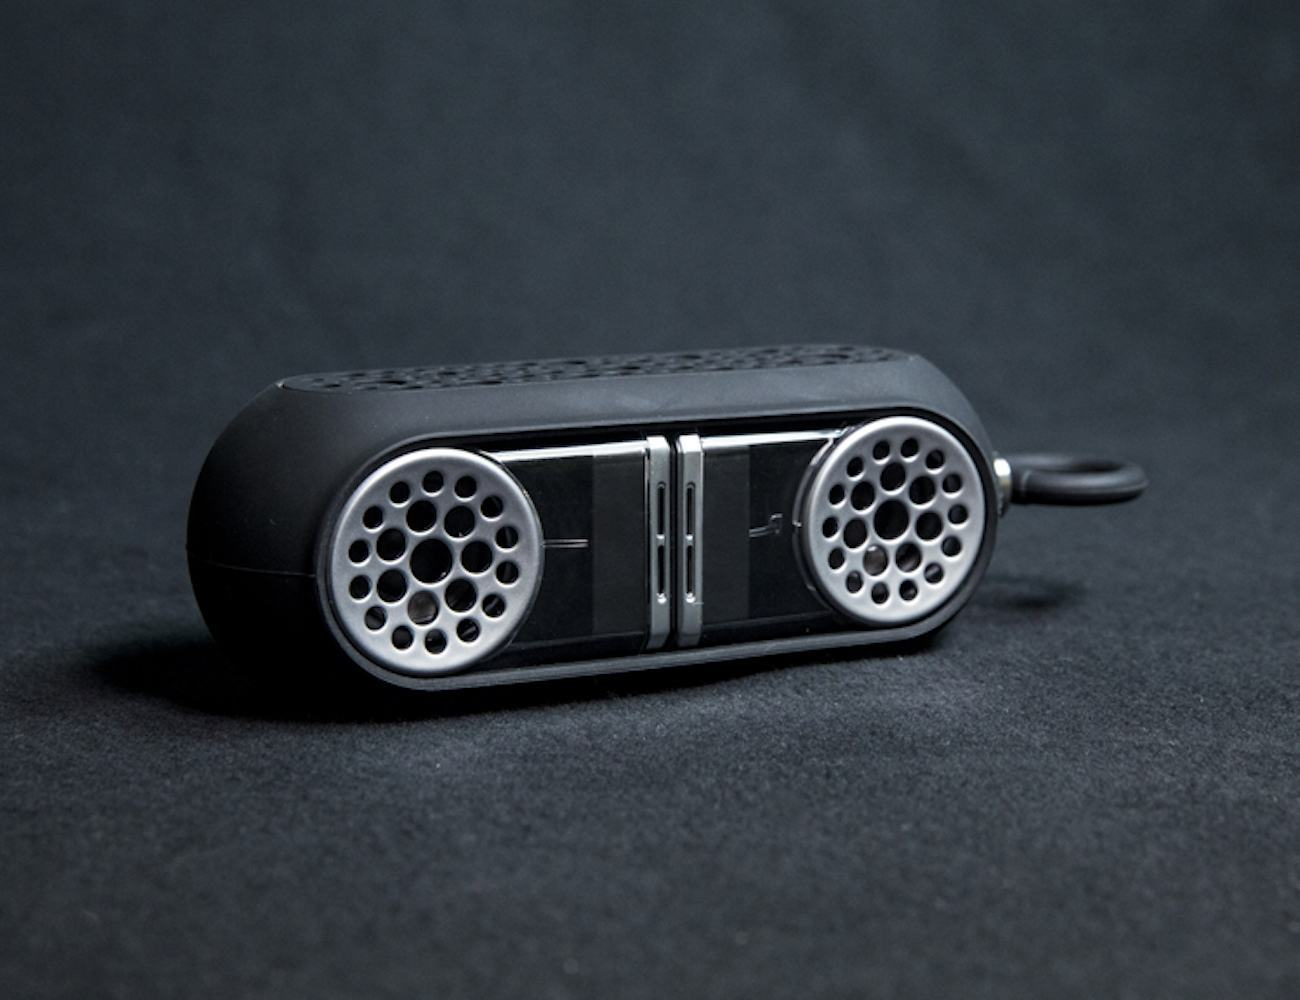 epic sound stereo speakers 02